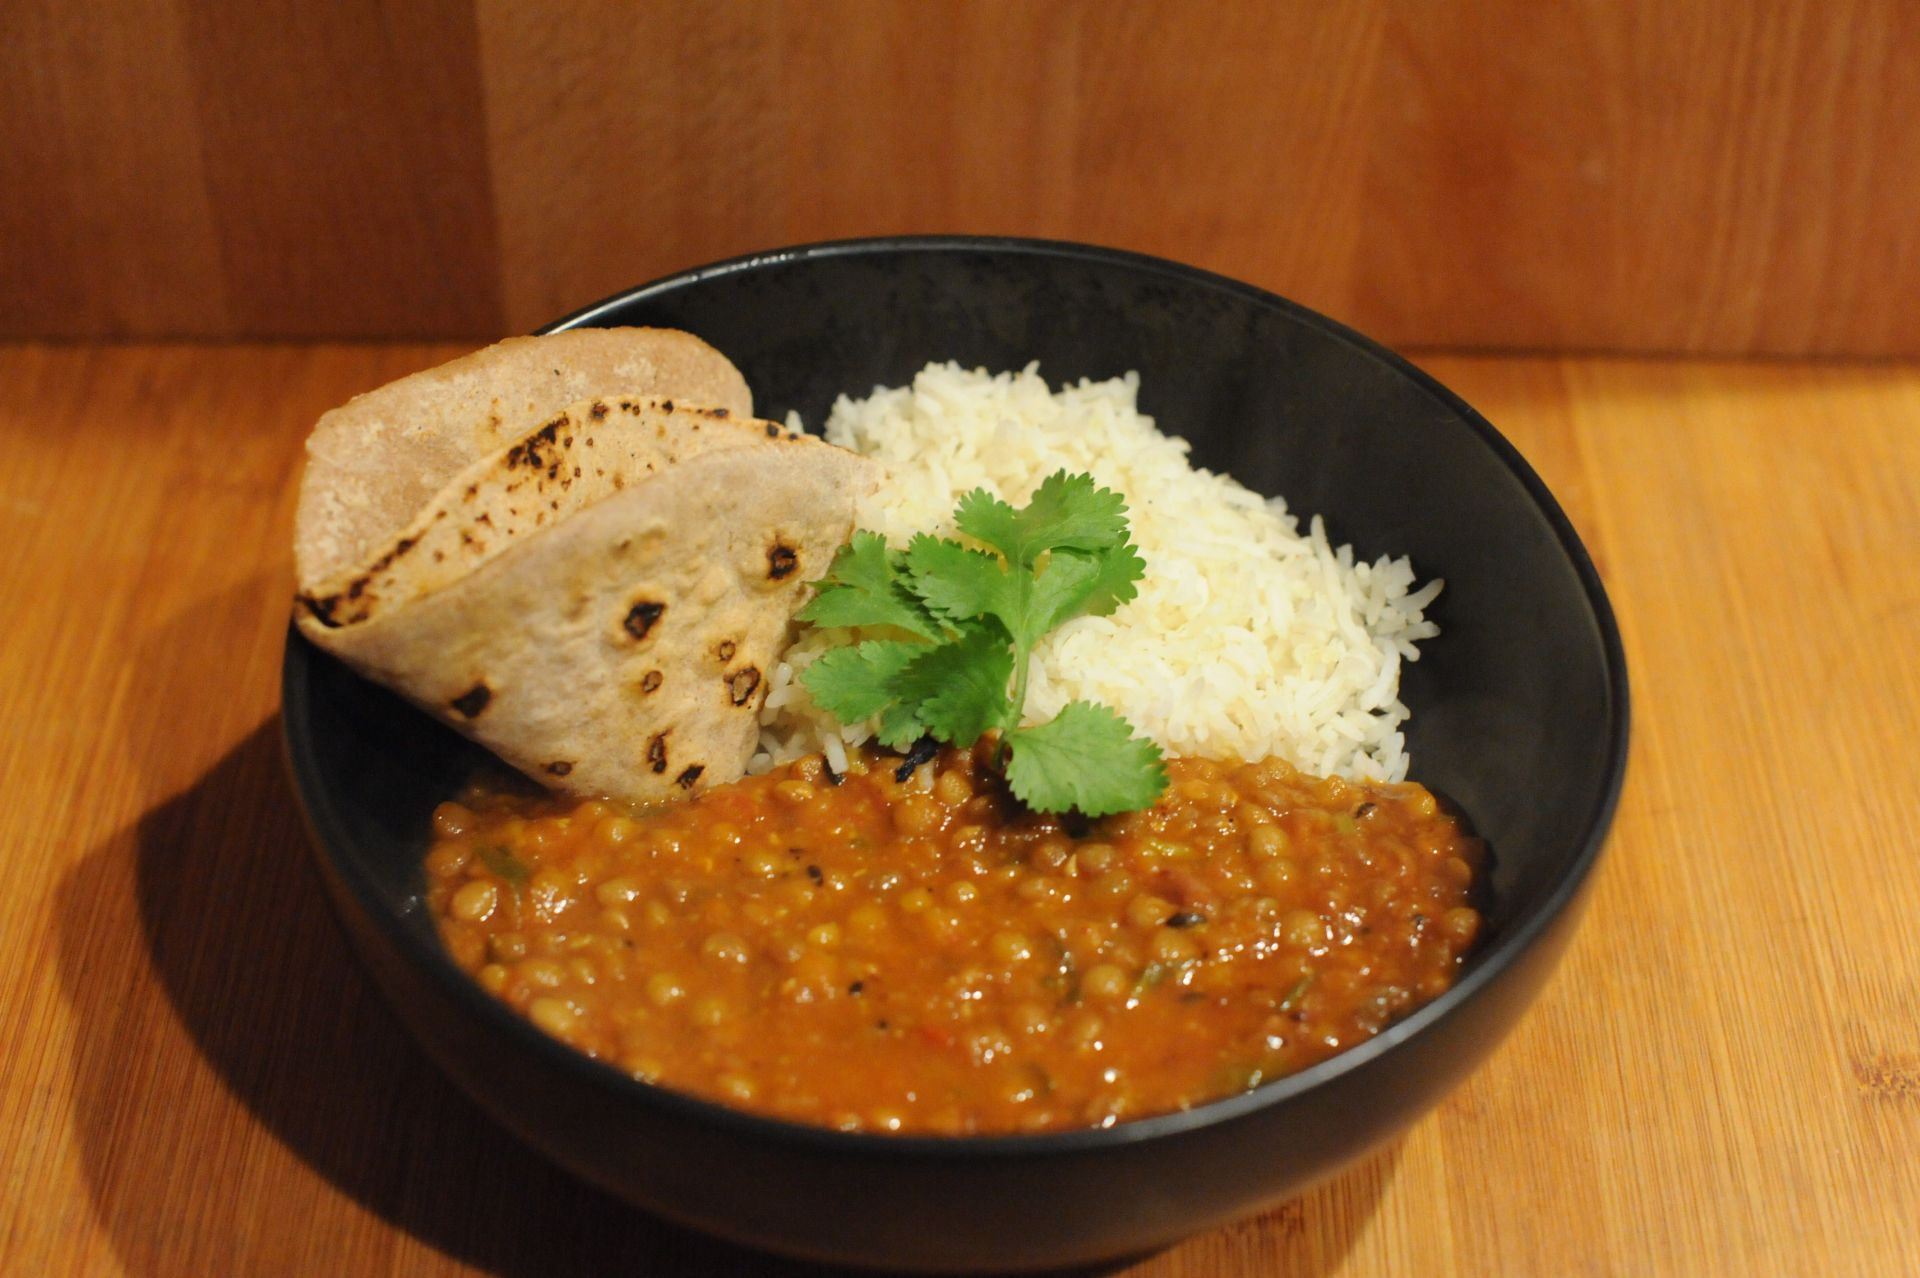 This Indian lentil curry recipe claims to be like at a restaurant, and it is!